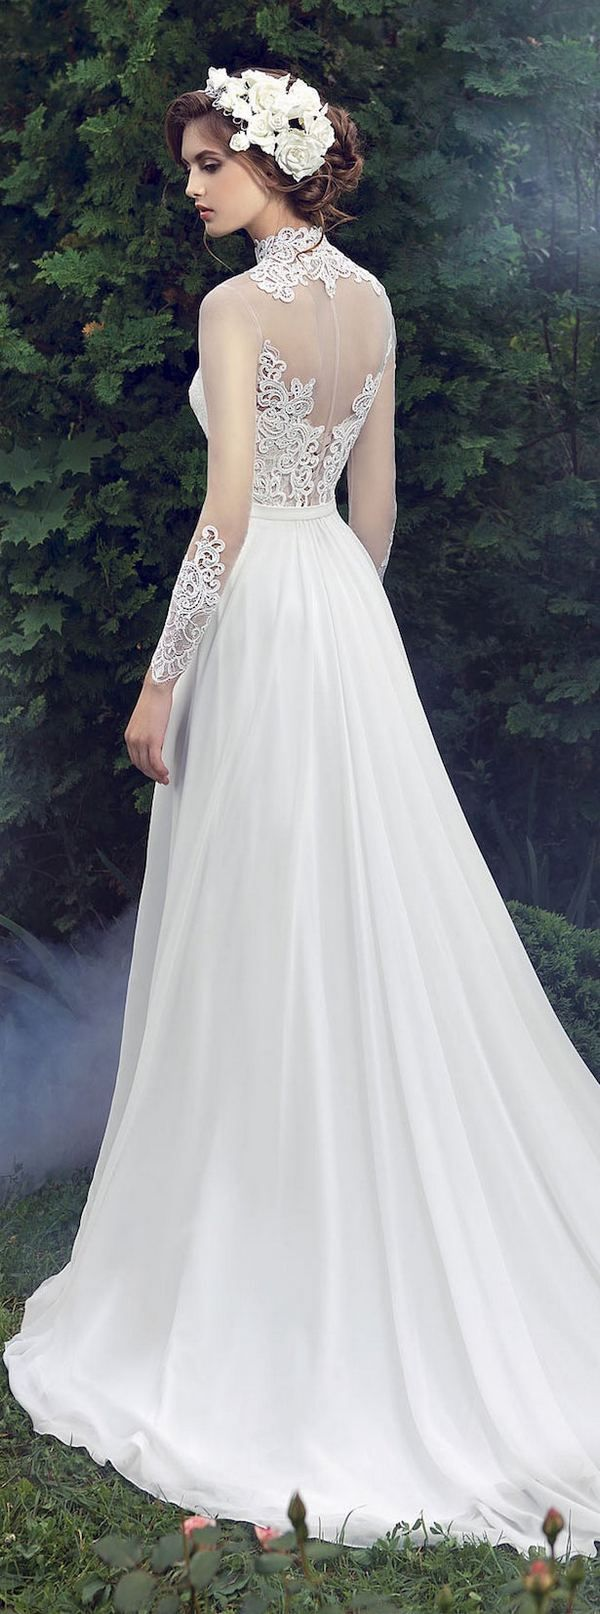 Milva 2016 Wedding Dresses Fairy Garden Collection / http://www.deerpearlflowers.com/milva-wedding-dresses/17/